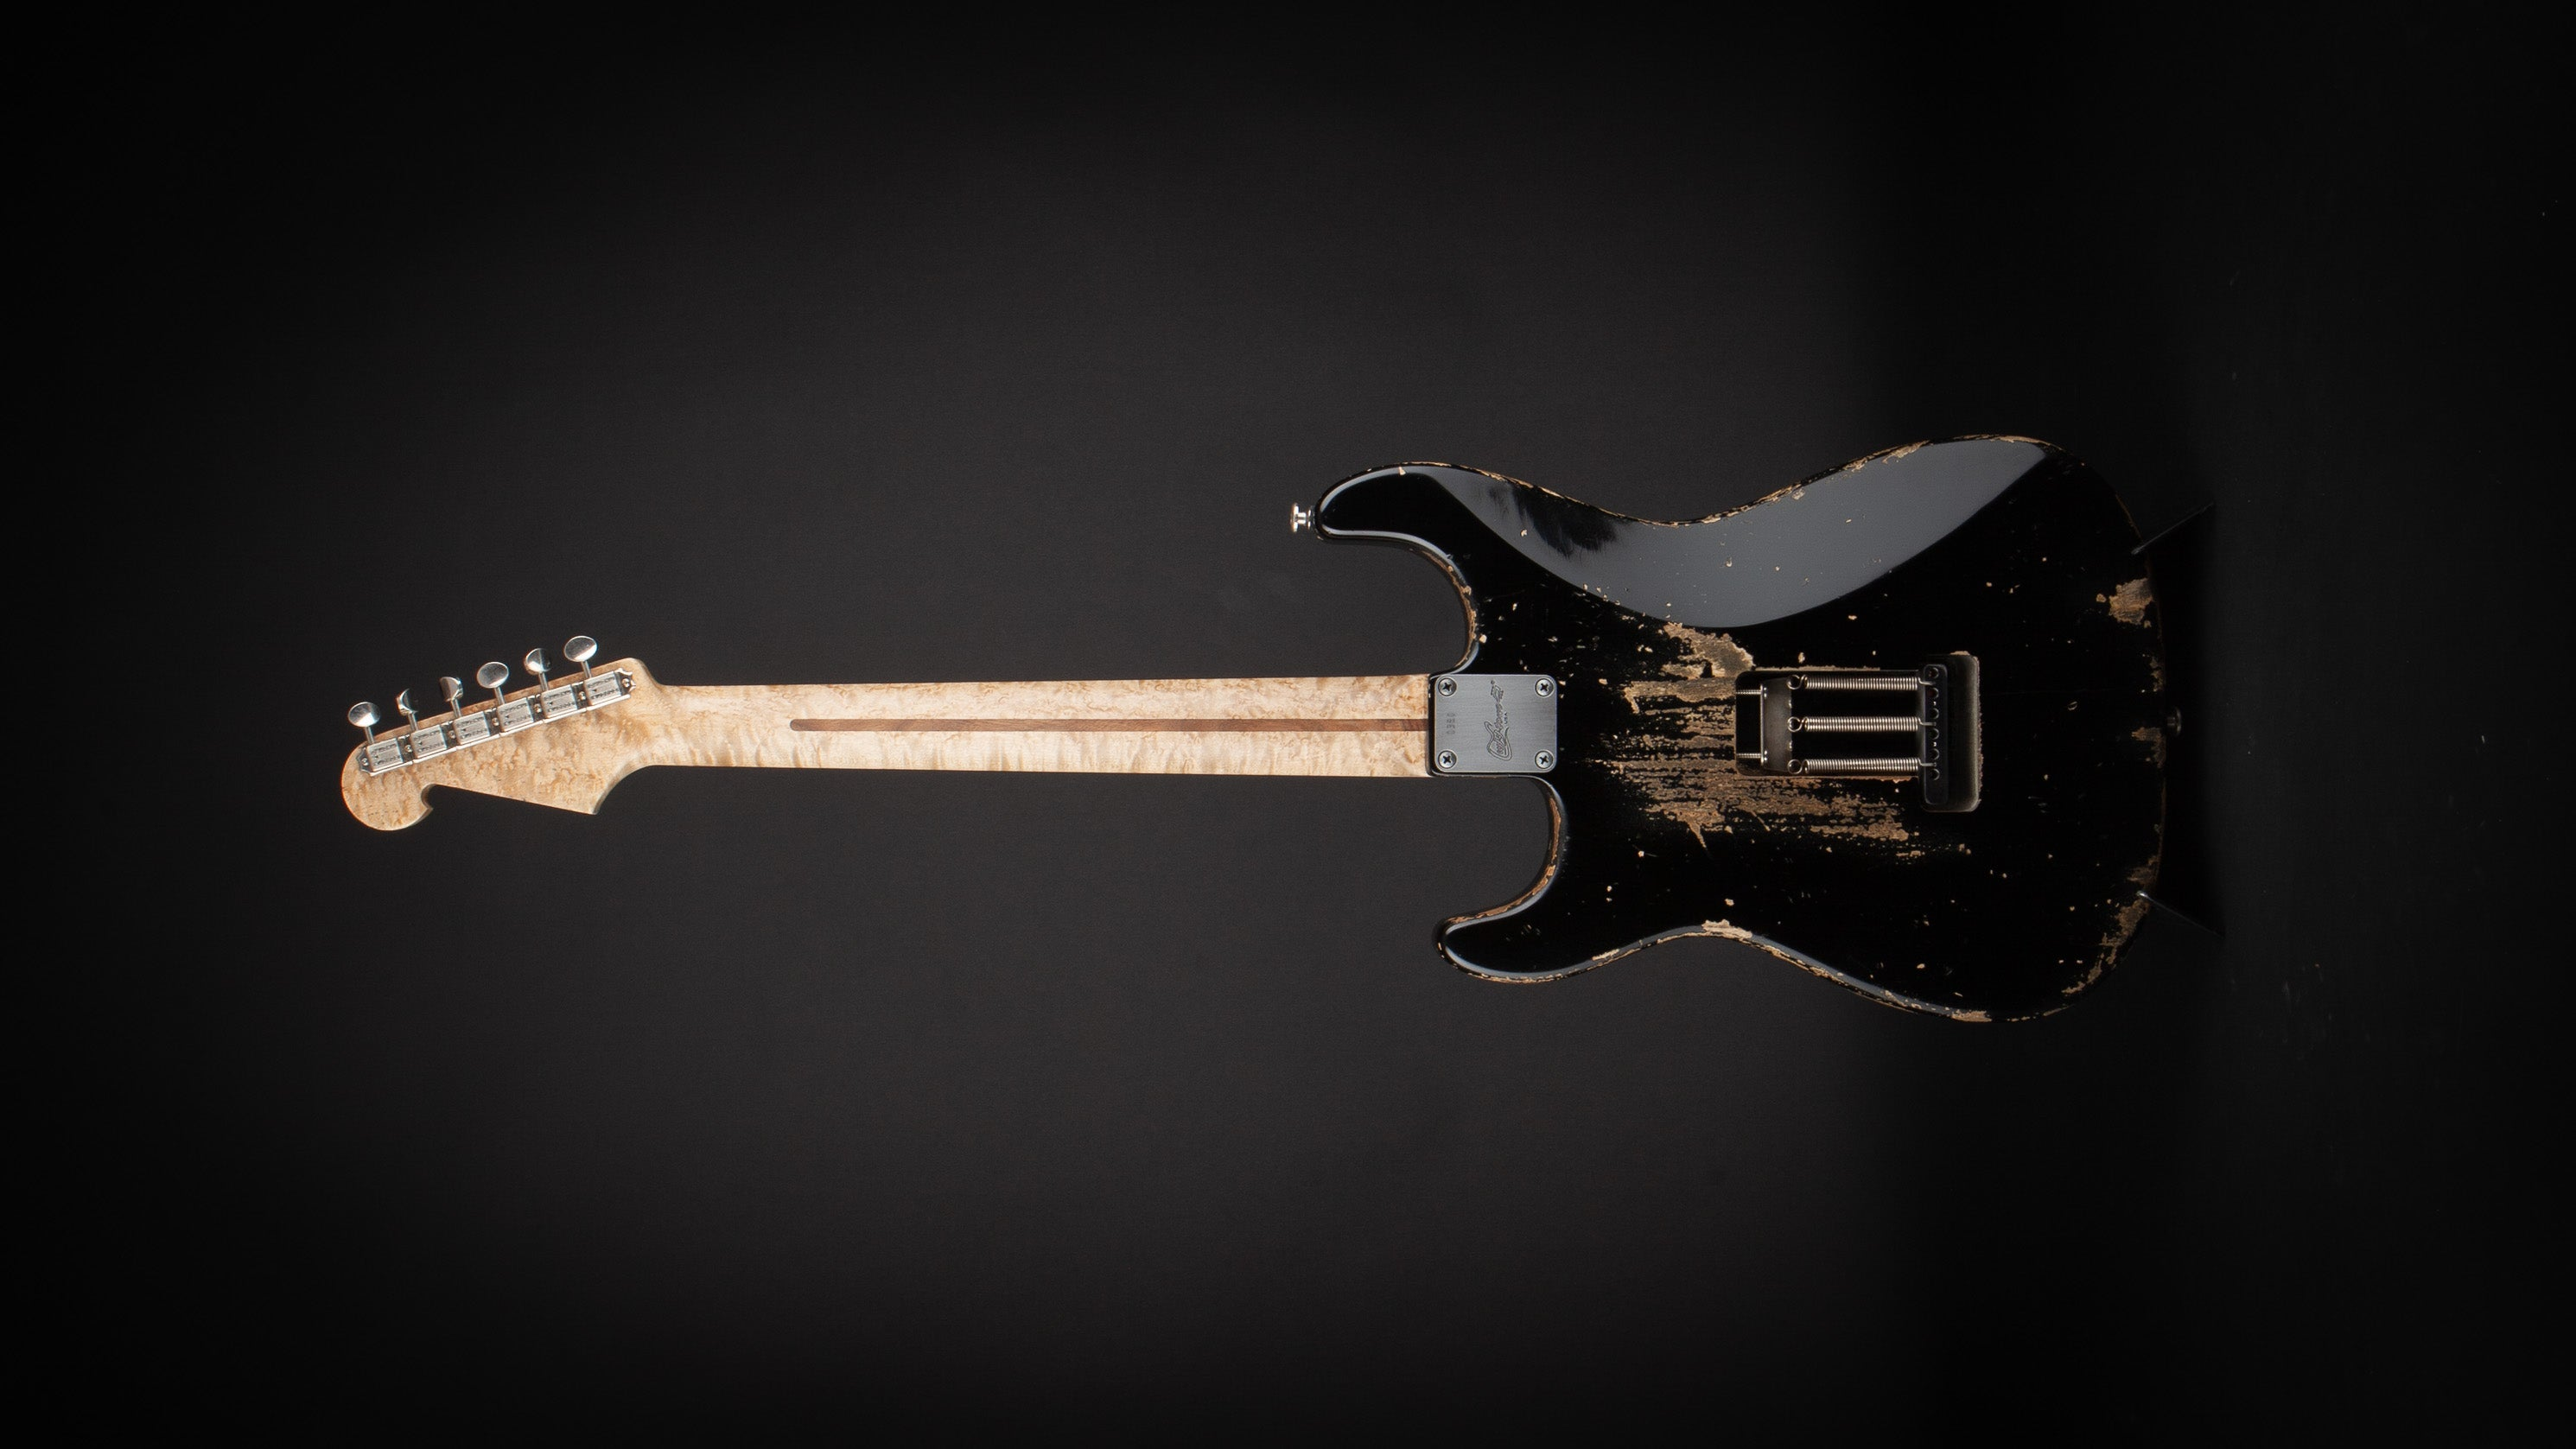 Luxxtone Guitars: Choppa S Black #380